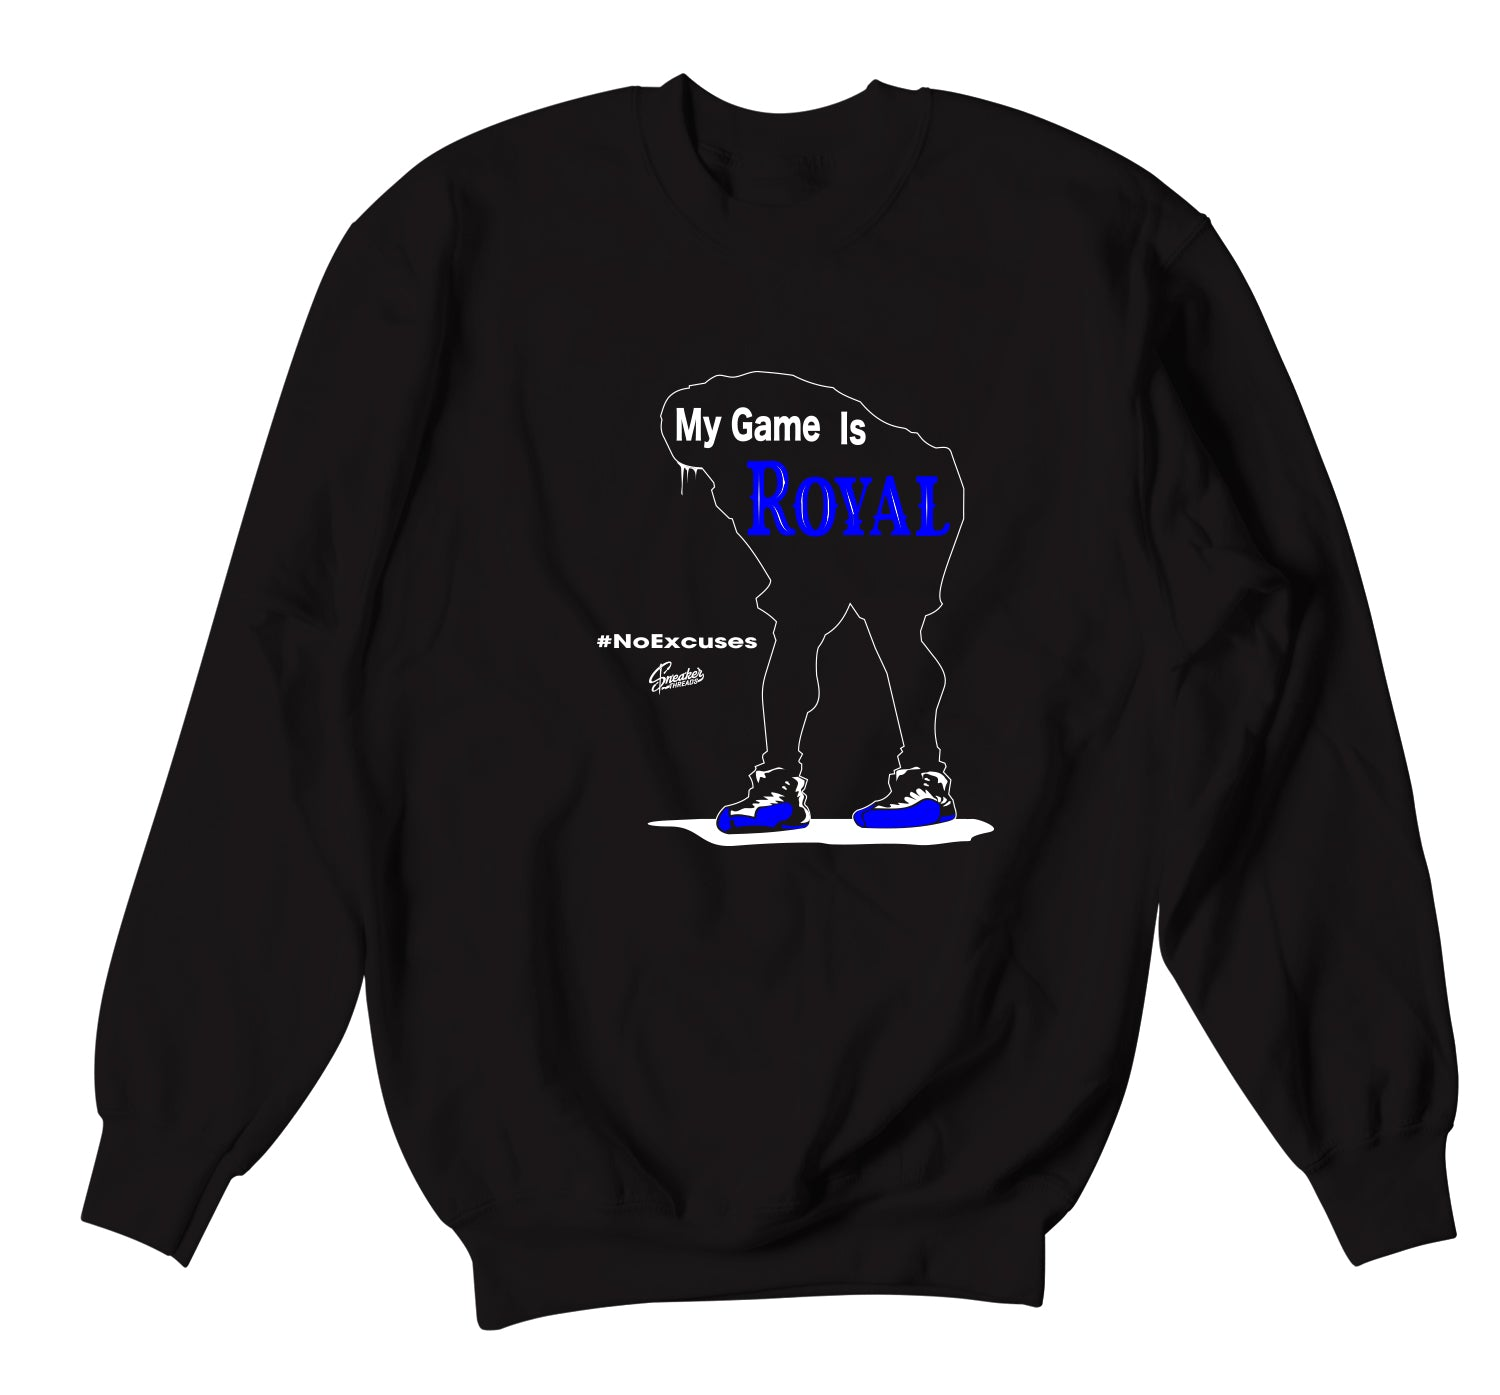 Jordan 12 game royal sneakers have matching Jordan crewneck sweaters